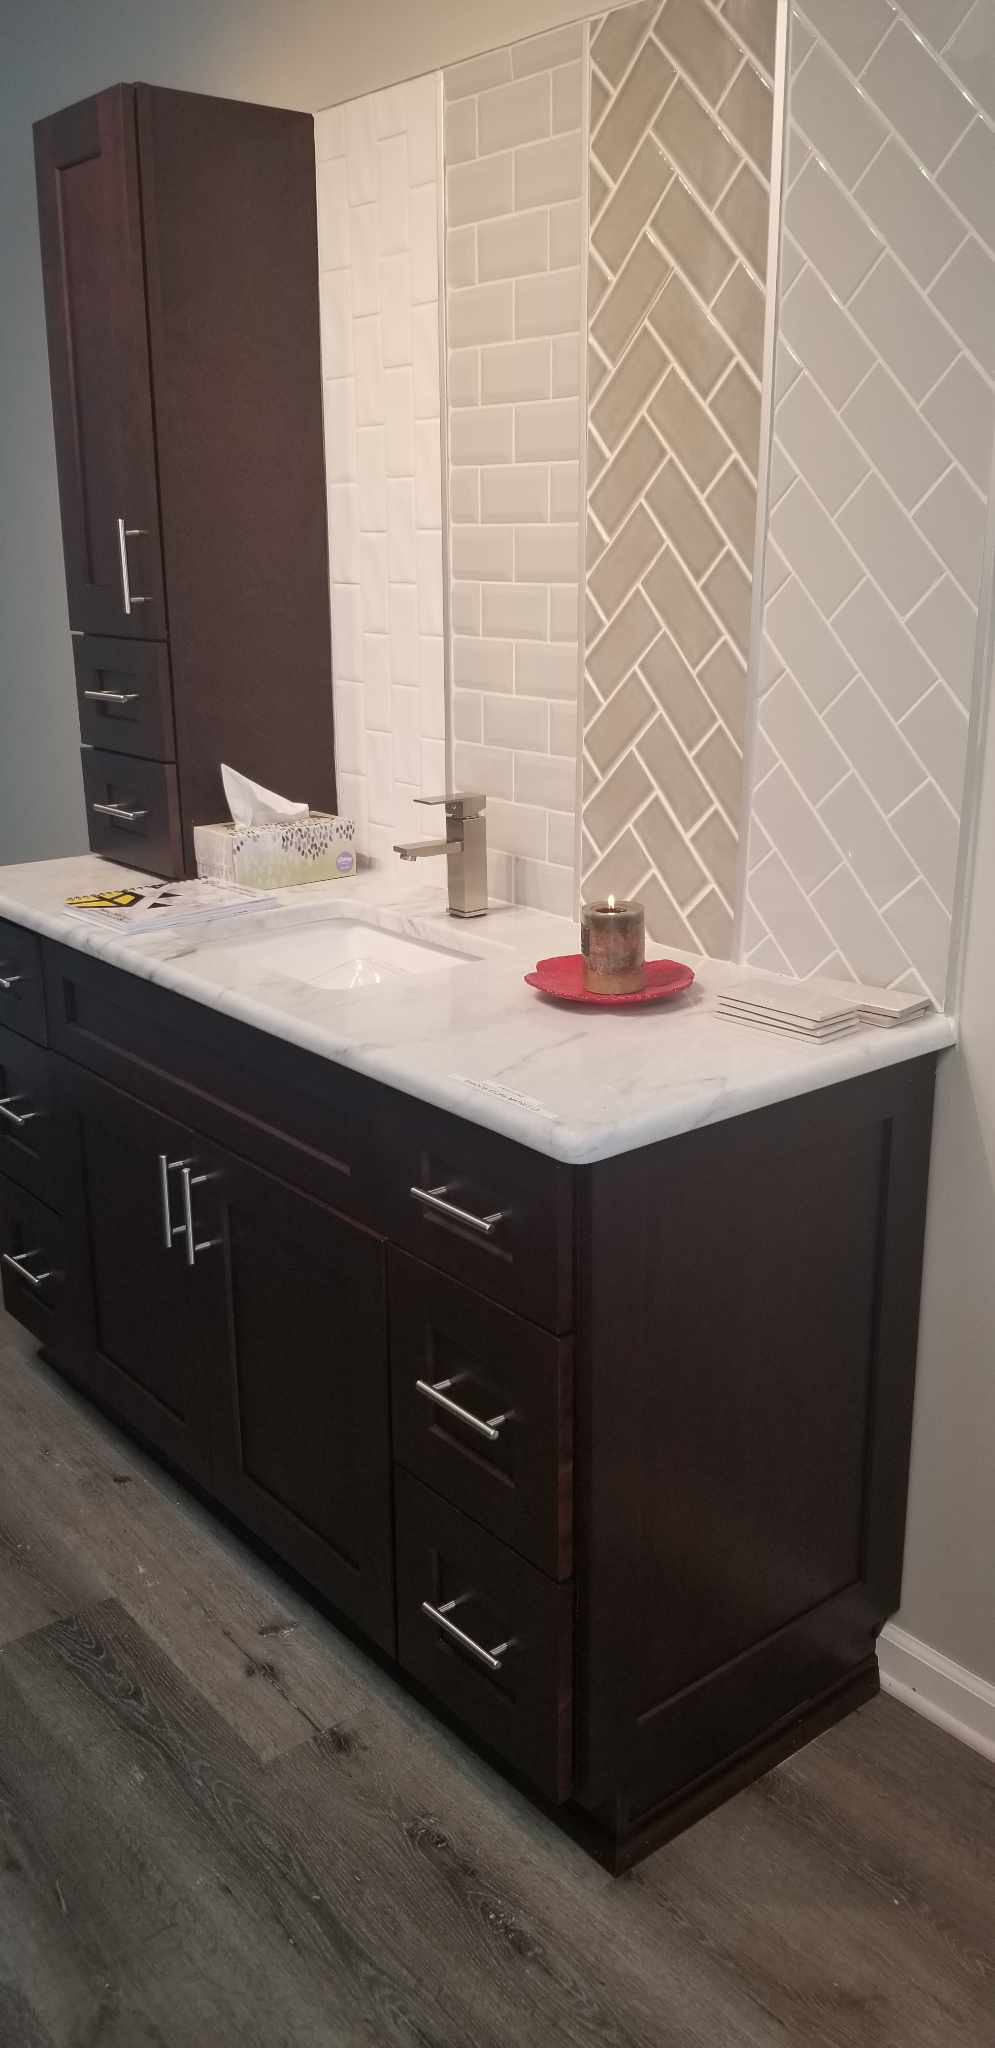 We offer a wide variety of tile for kitchen backsplashes and bathroom uses.